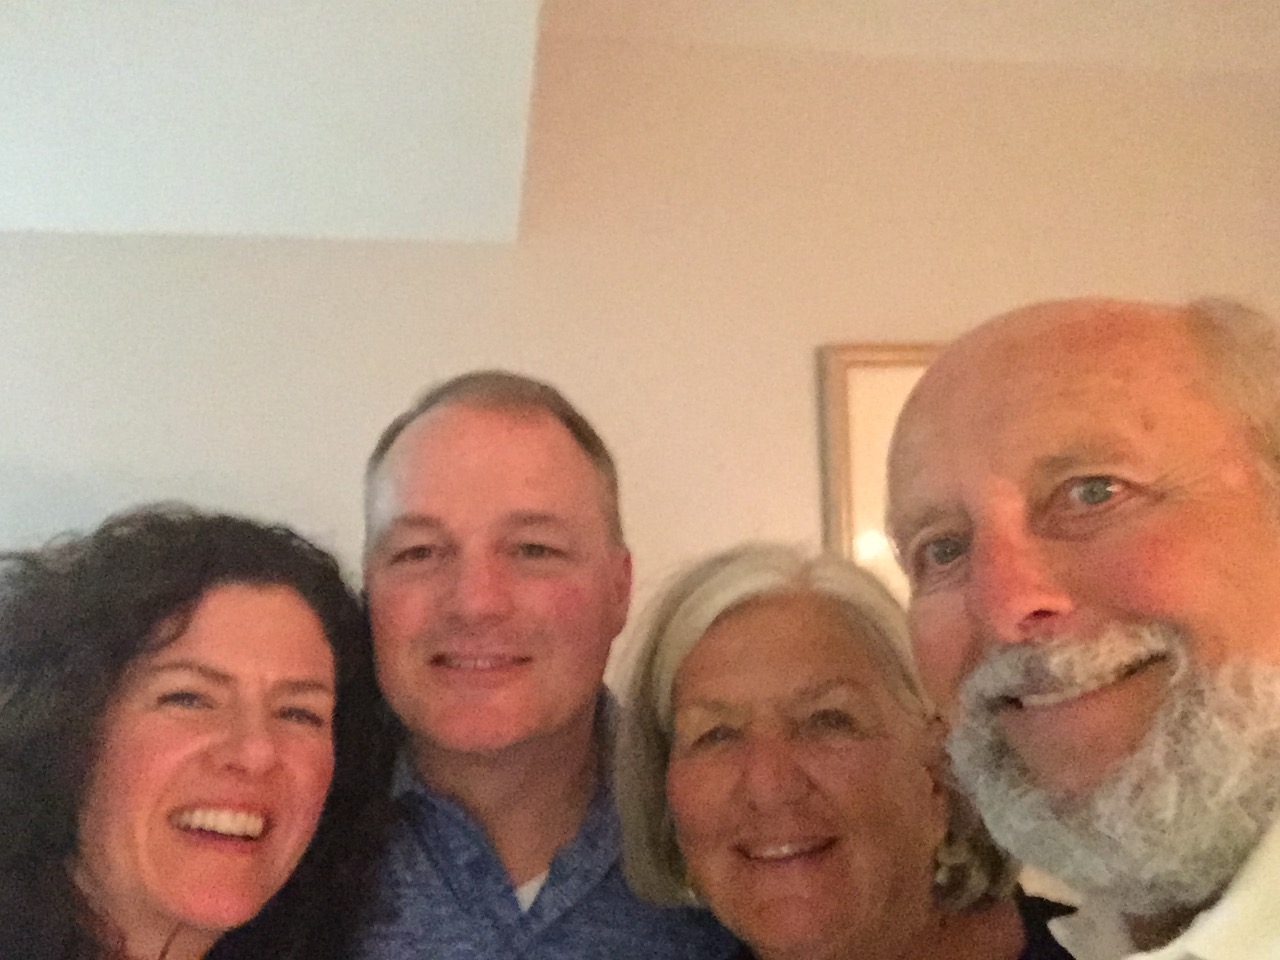 Fun Visit with Bob & Ginger March 2017.  We enjoyed many great vacations in New Smyrna and are thankful for the great friendship.  Bob will be missed but never forgotten.